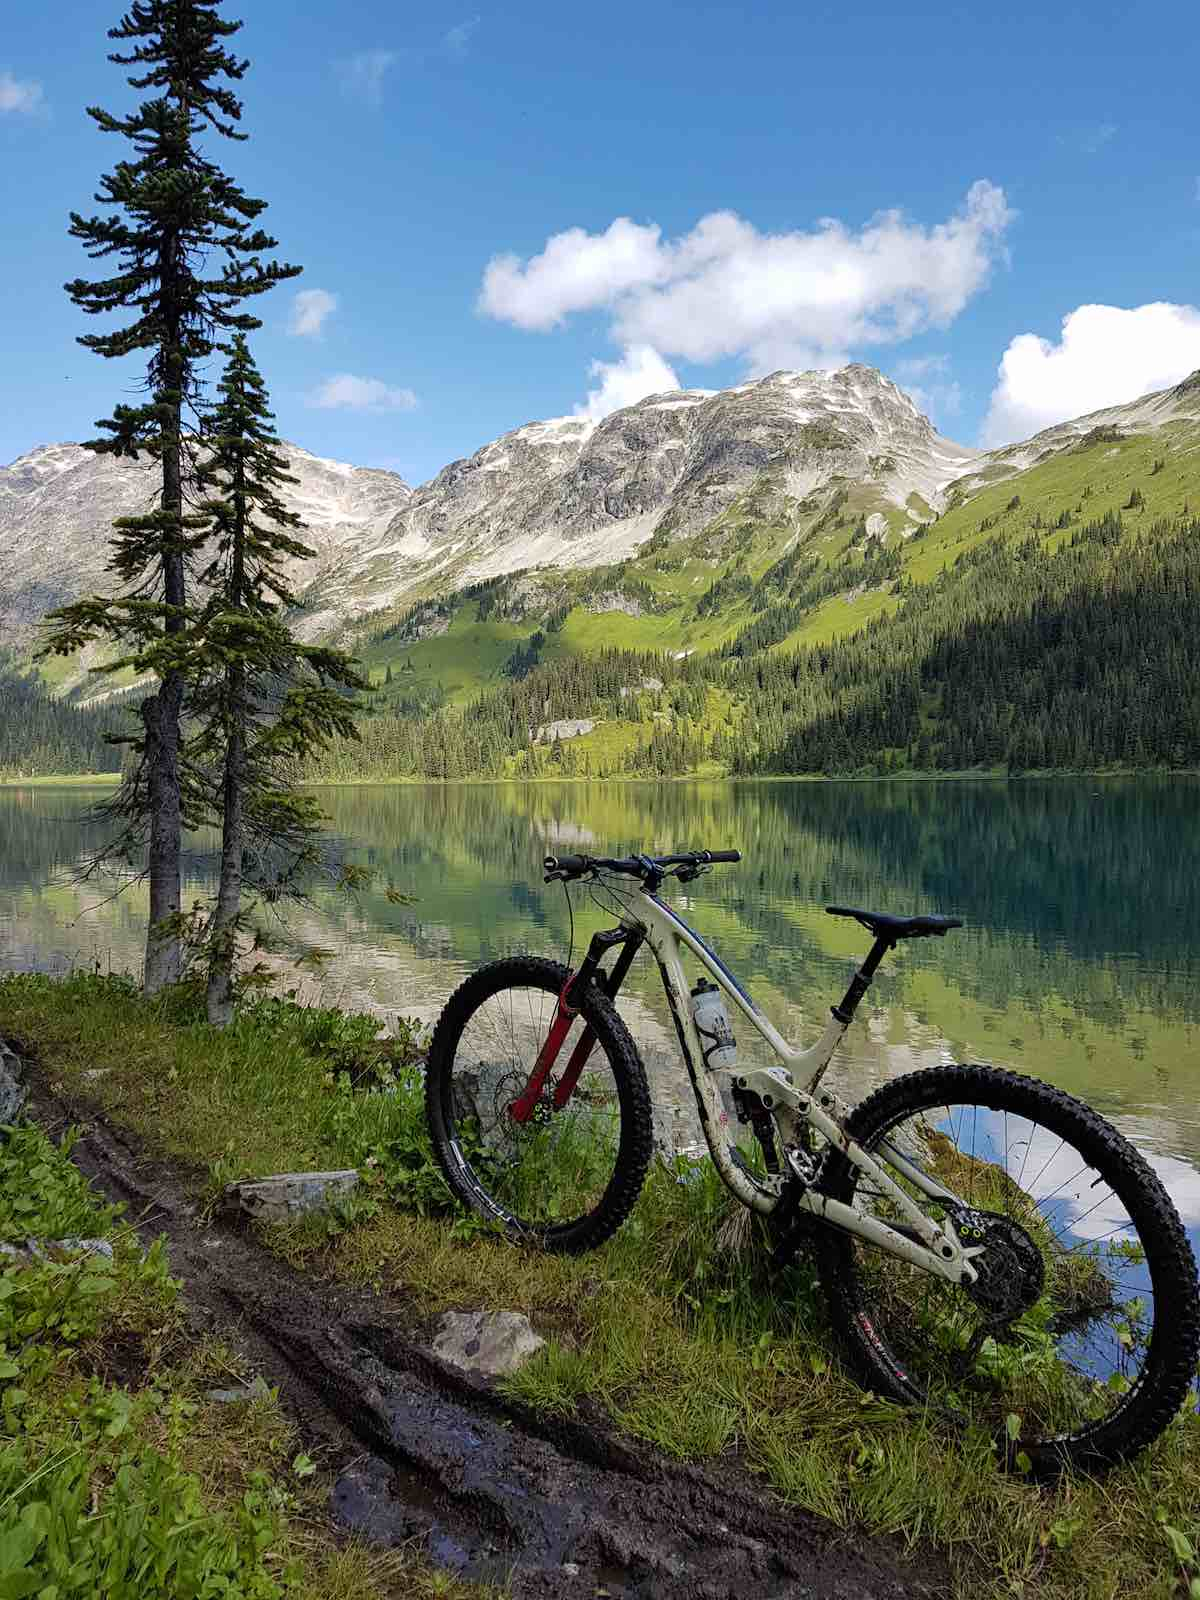 bikerumor pic of the day kona process on a lake on mount barbour in pemberton bd, canada.